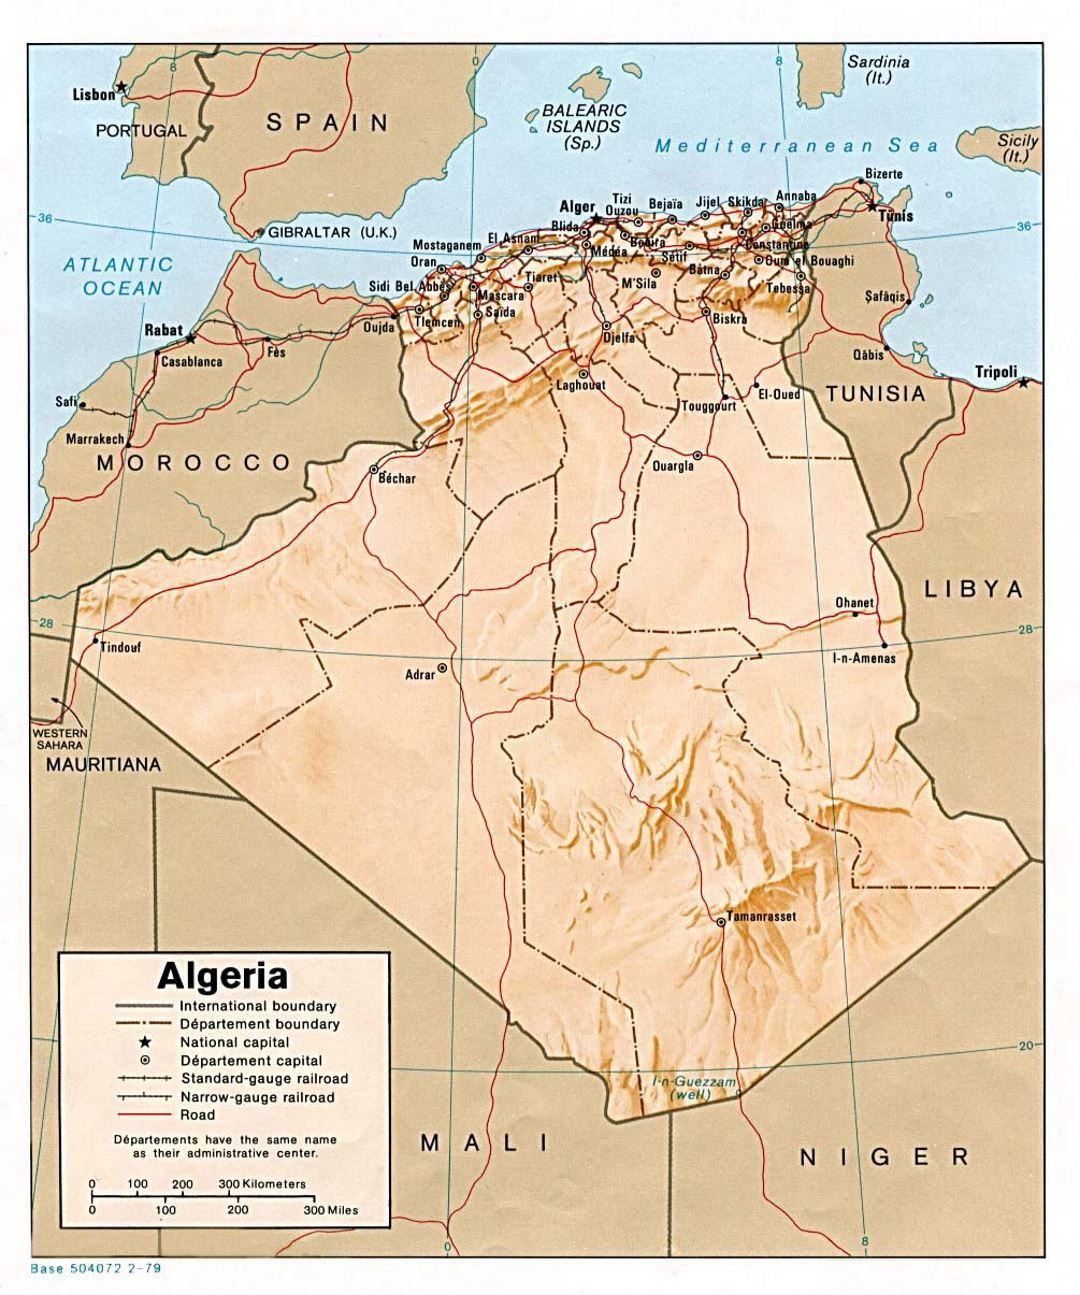 Detailed political and administrative map of Algeria with relief, roads, railroads and major cities - 1979